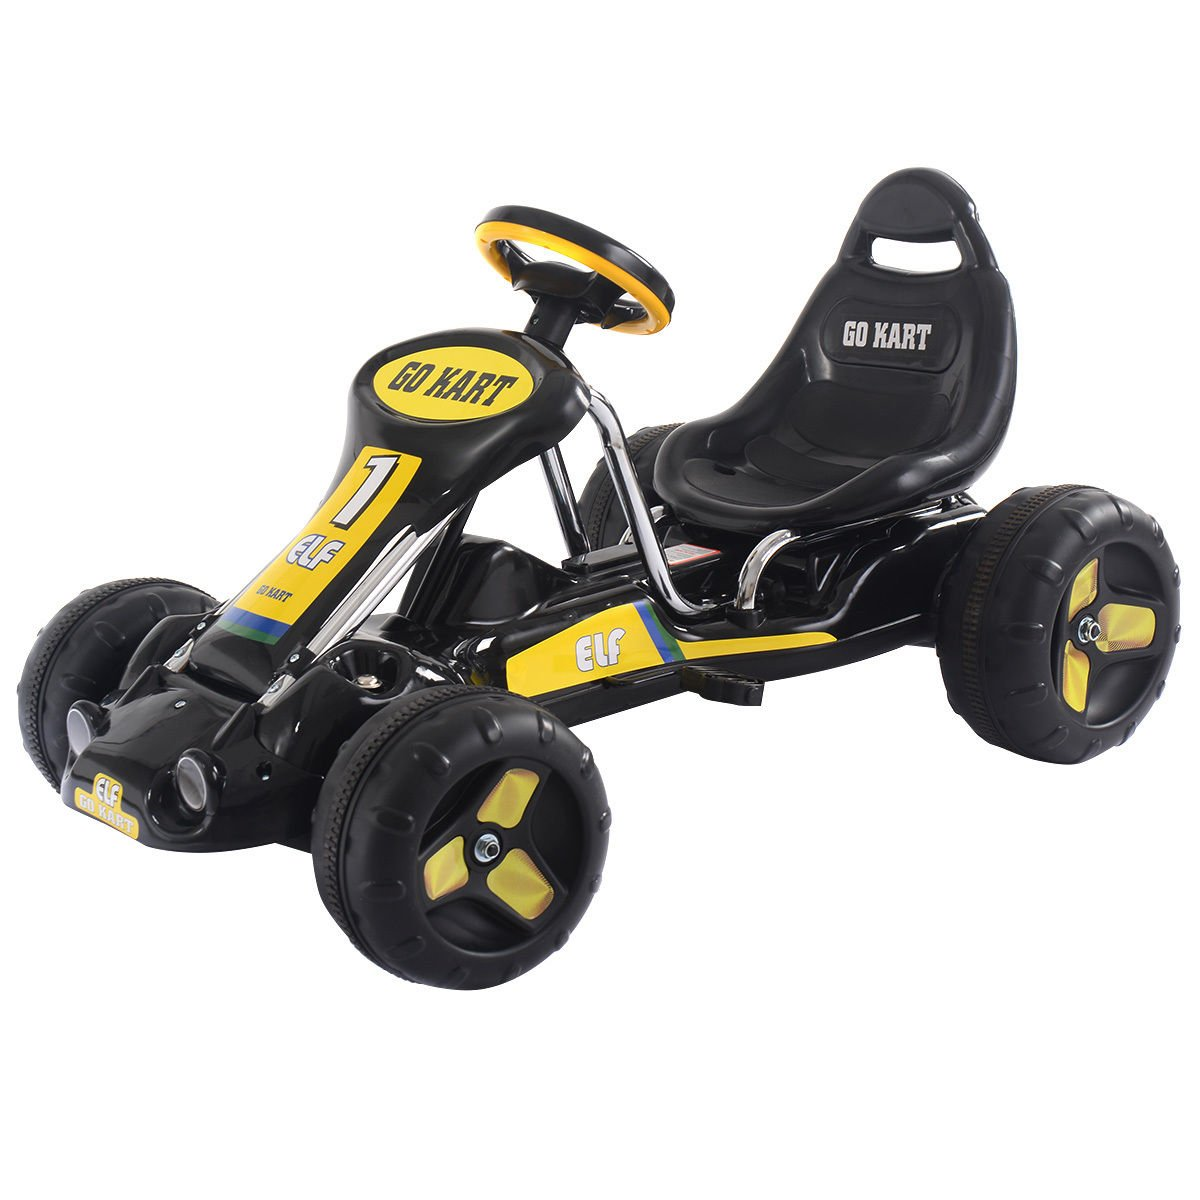 Costzon Go Kart, 4 Wheel Kids Ride on Car, Pedal Powered Ride On Toys for Boys & Girls with Adjustab (Black)